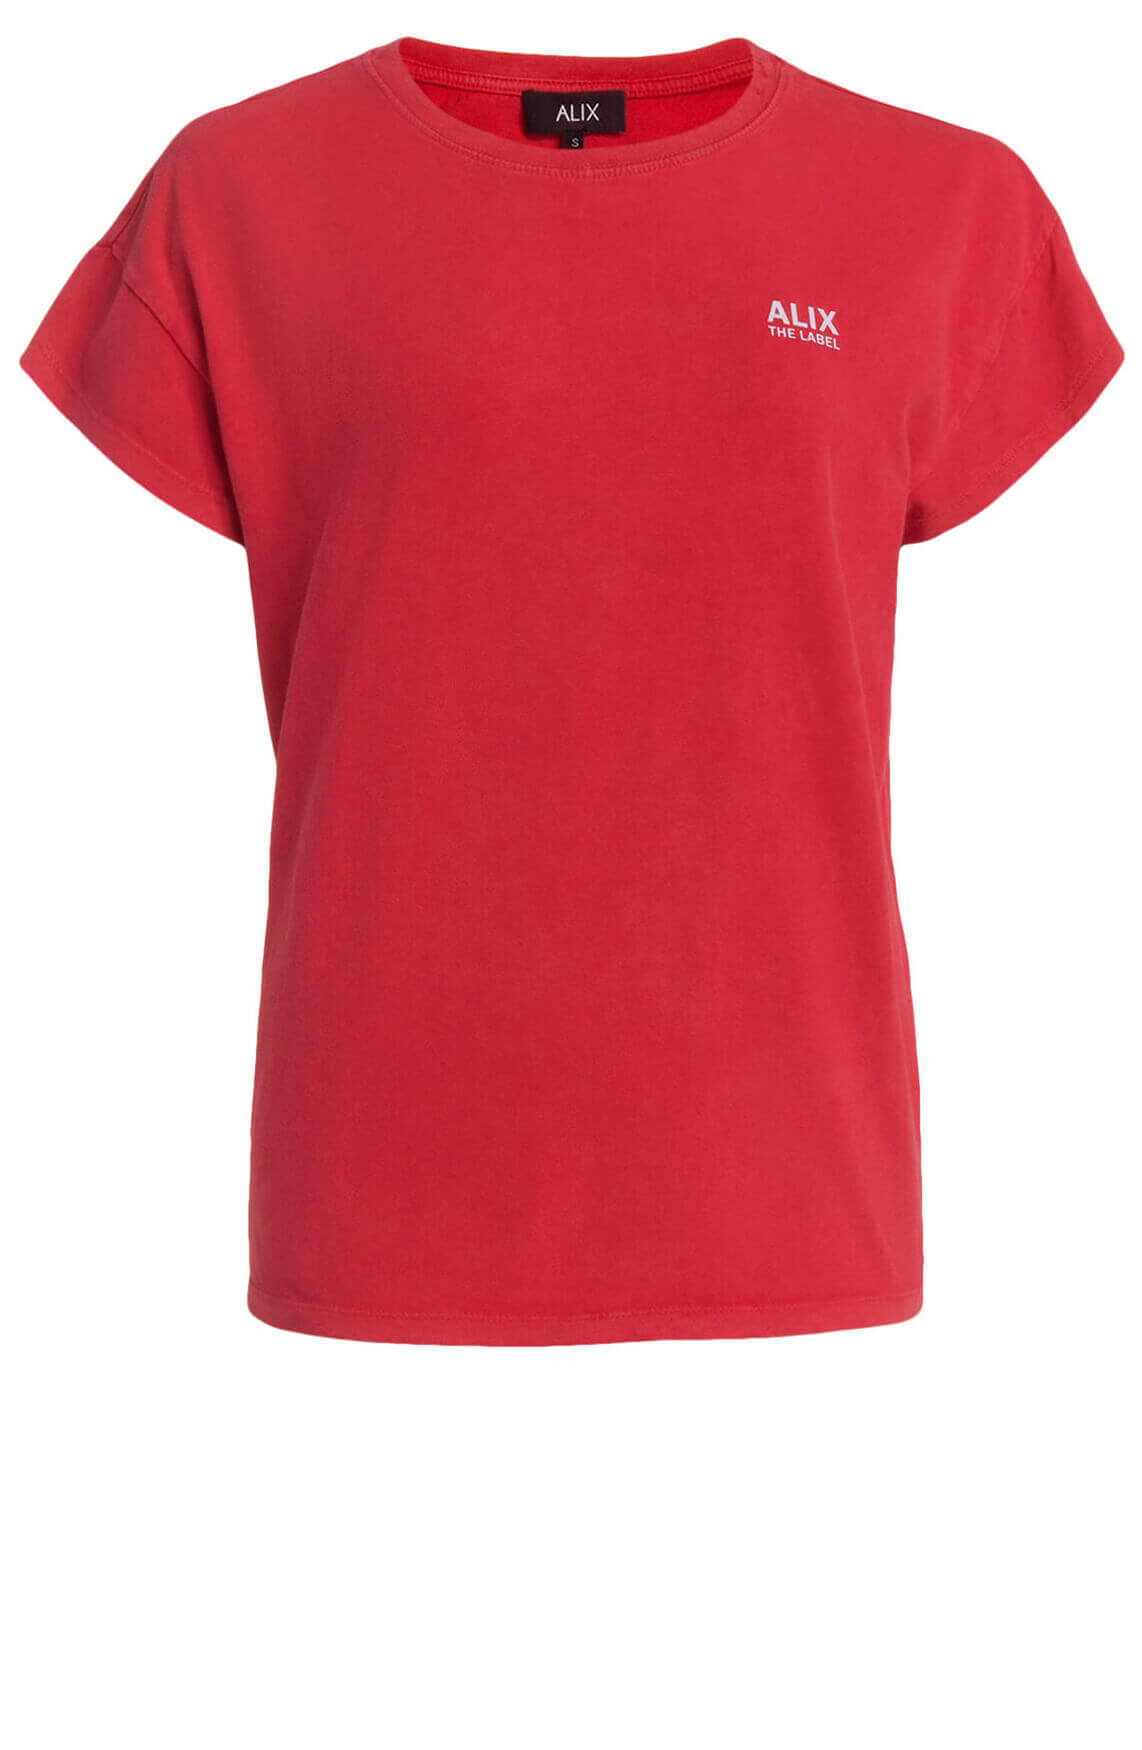 Alix The Label Dames On Tour shirt Rood